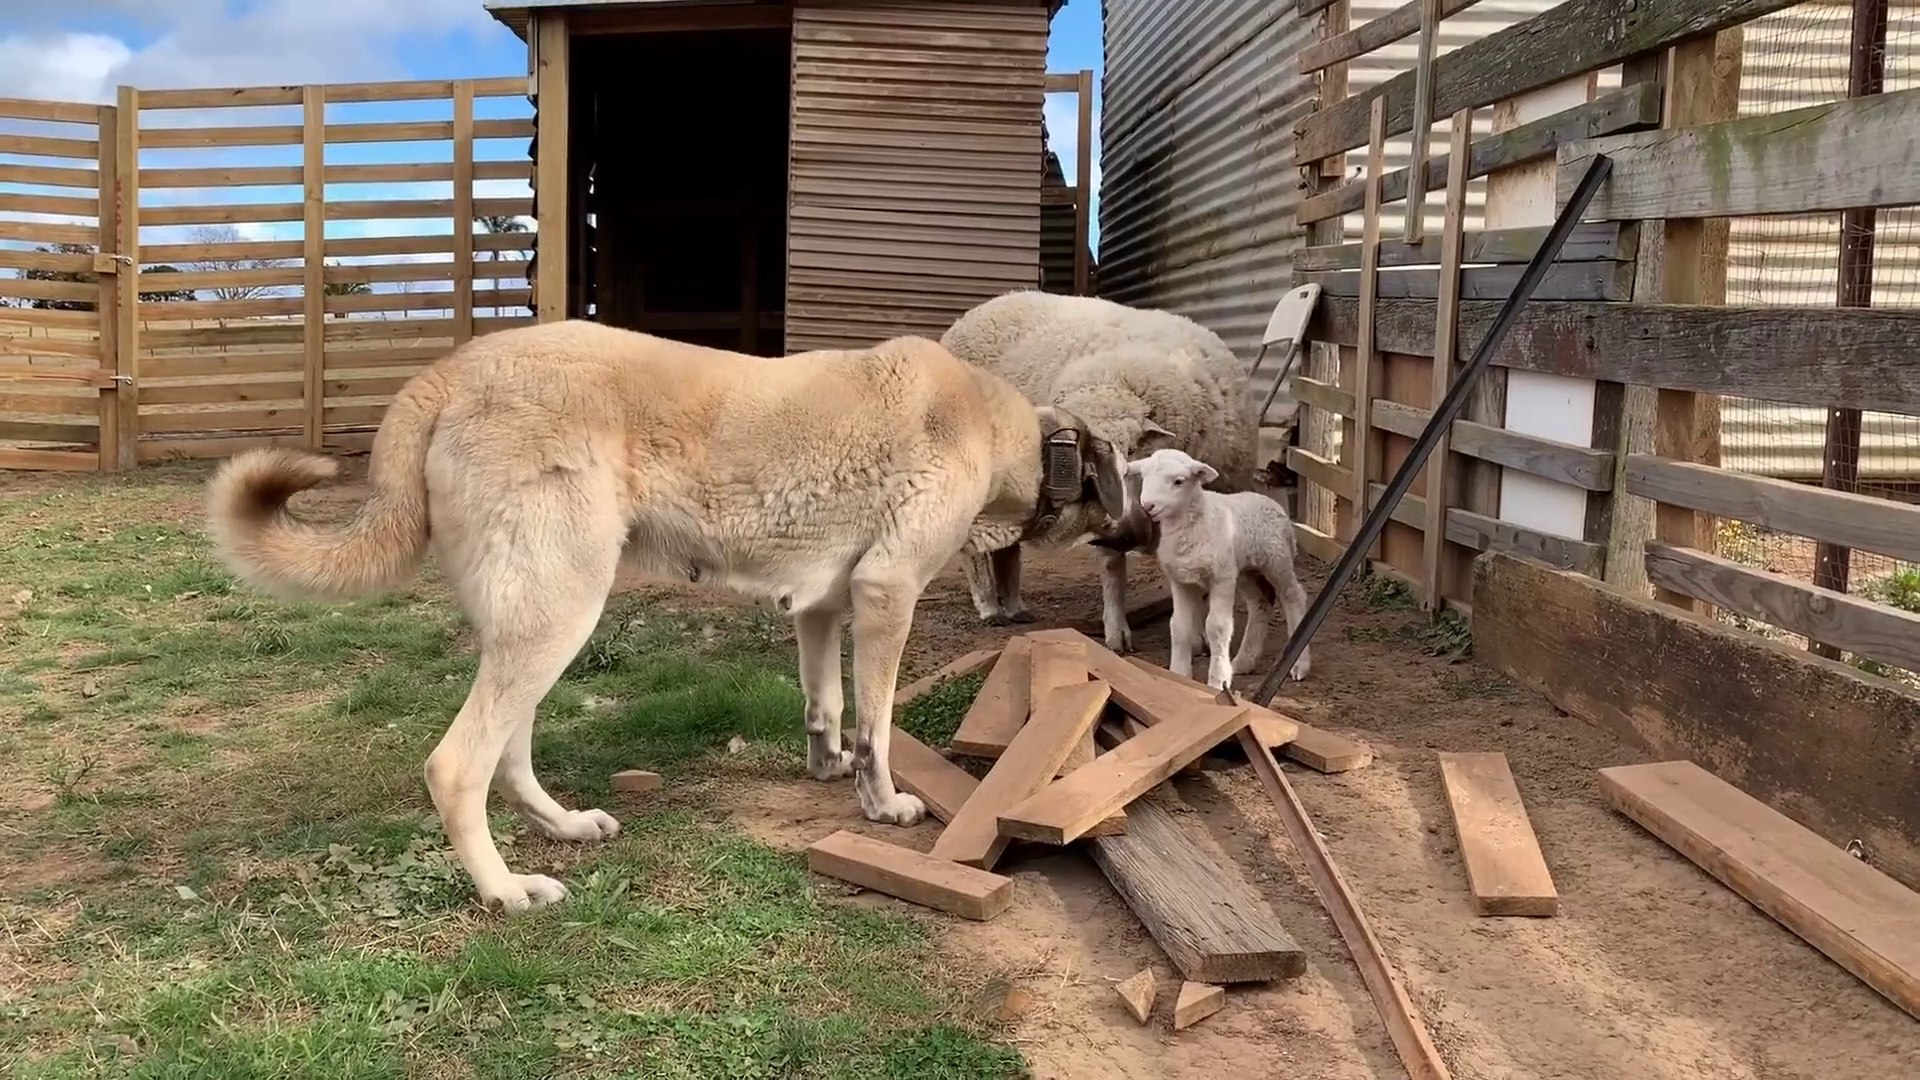 SiVAS KANGAL KOPEGi KOYUN ve KUZU NOBETi - KANGAL DOG SHEEP and LAMB  WATCH